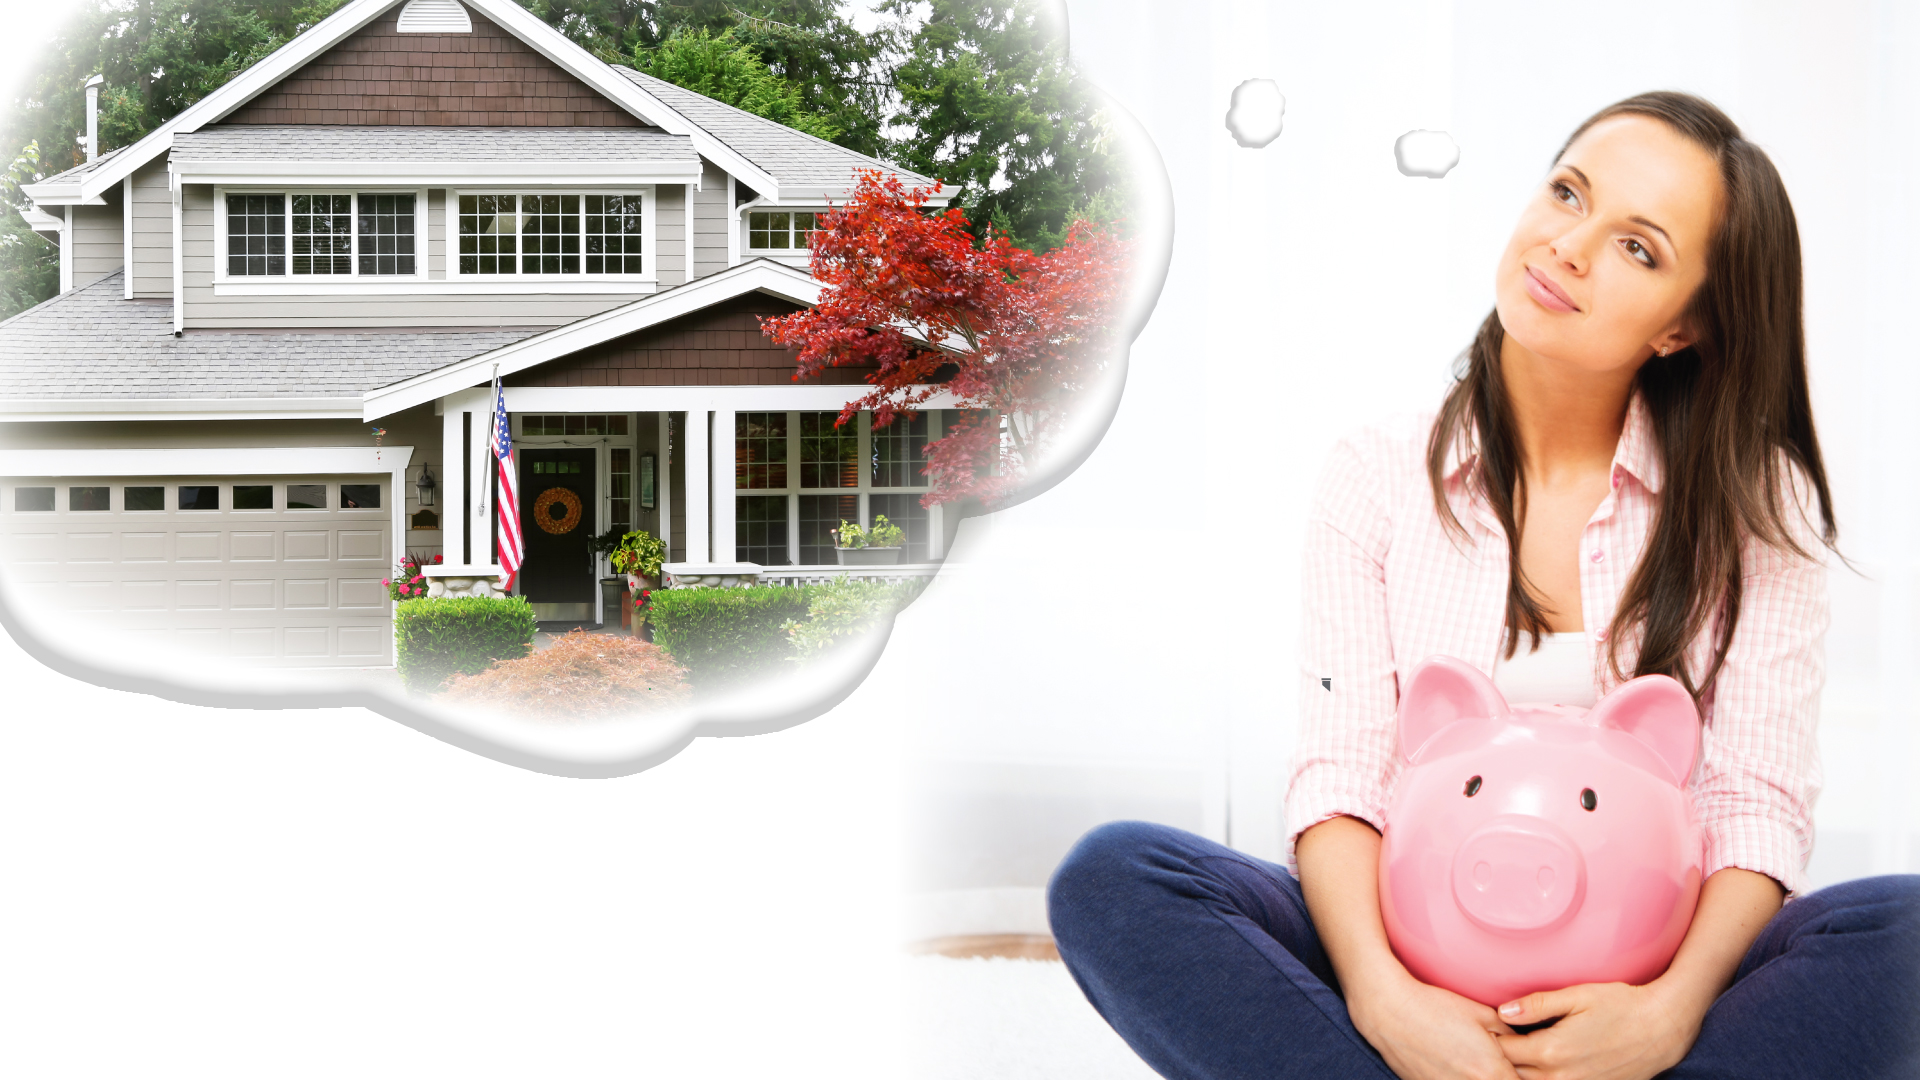 Woman dreaming about house holding piggy bank.